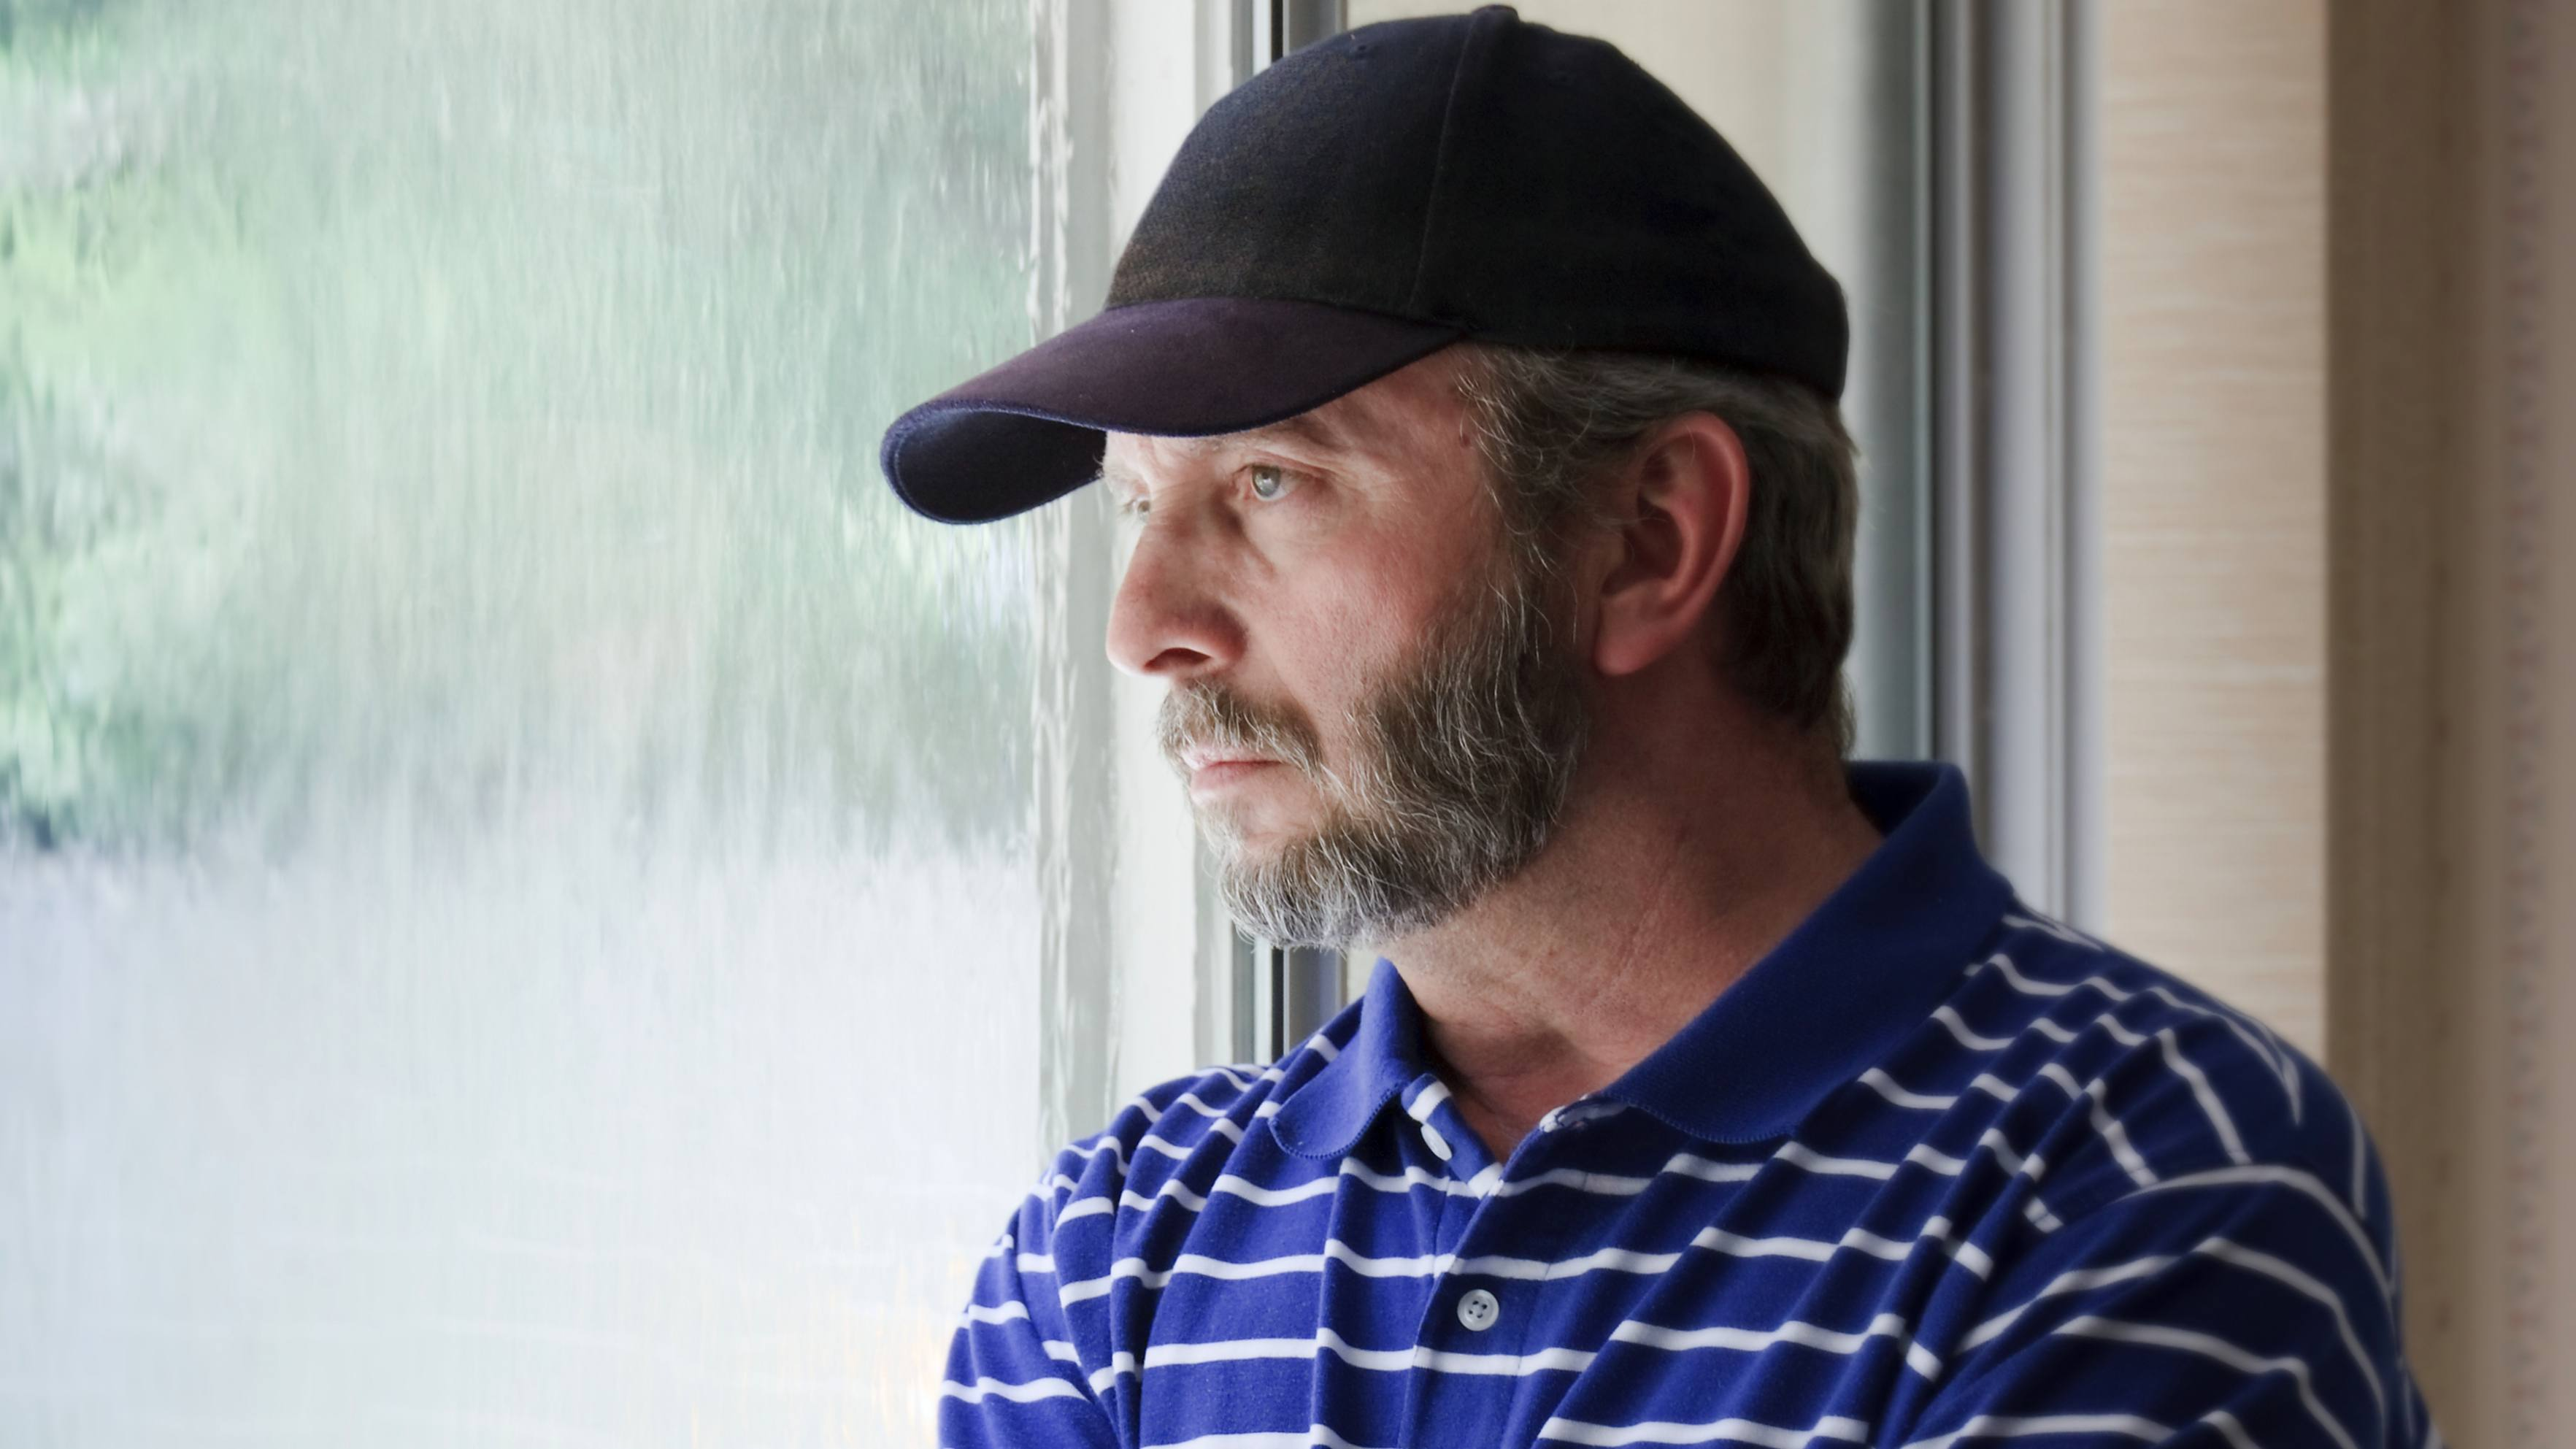 a middle-aged man wearing a baseball cap and staring out a window looking sad, thoughtful, depressed, worried